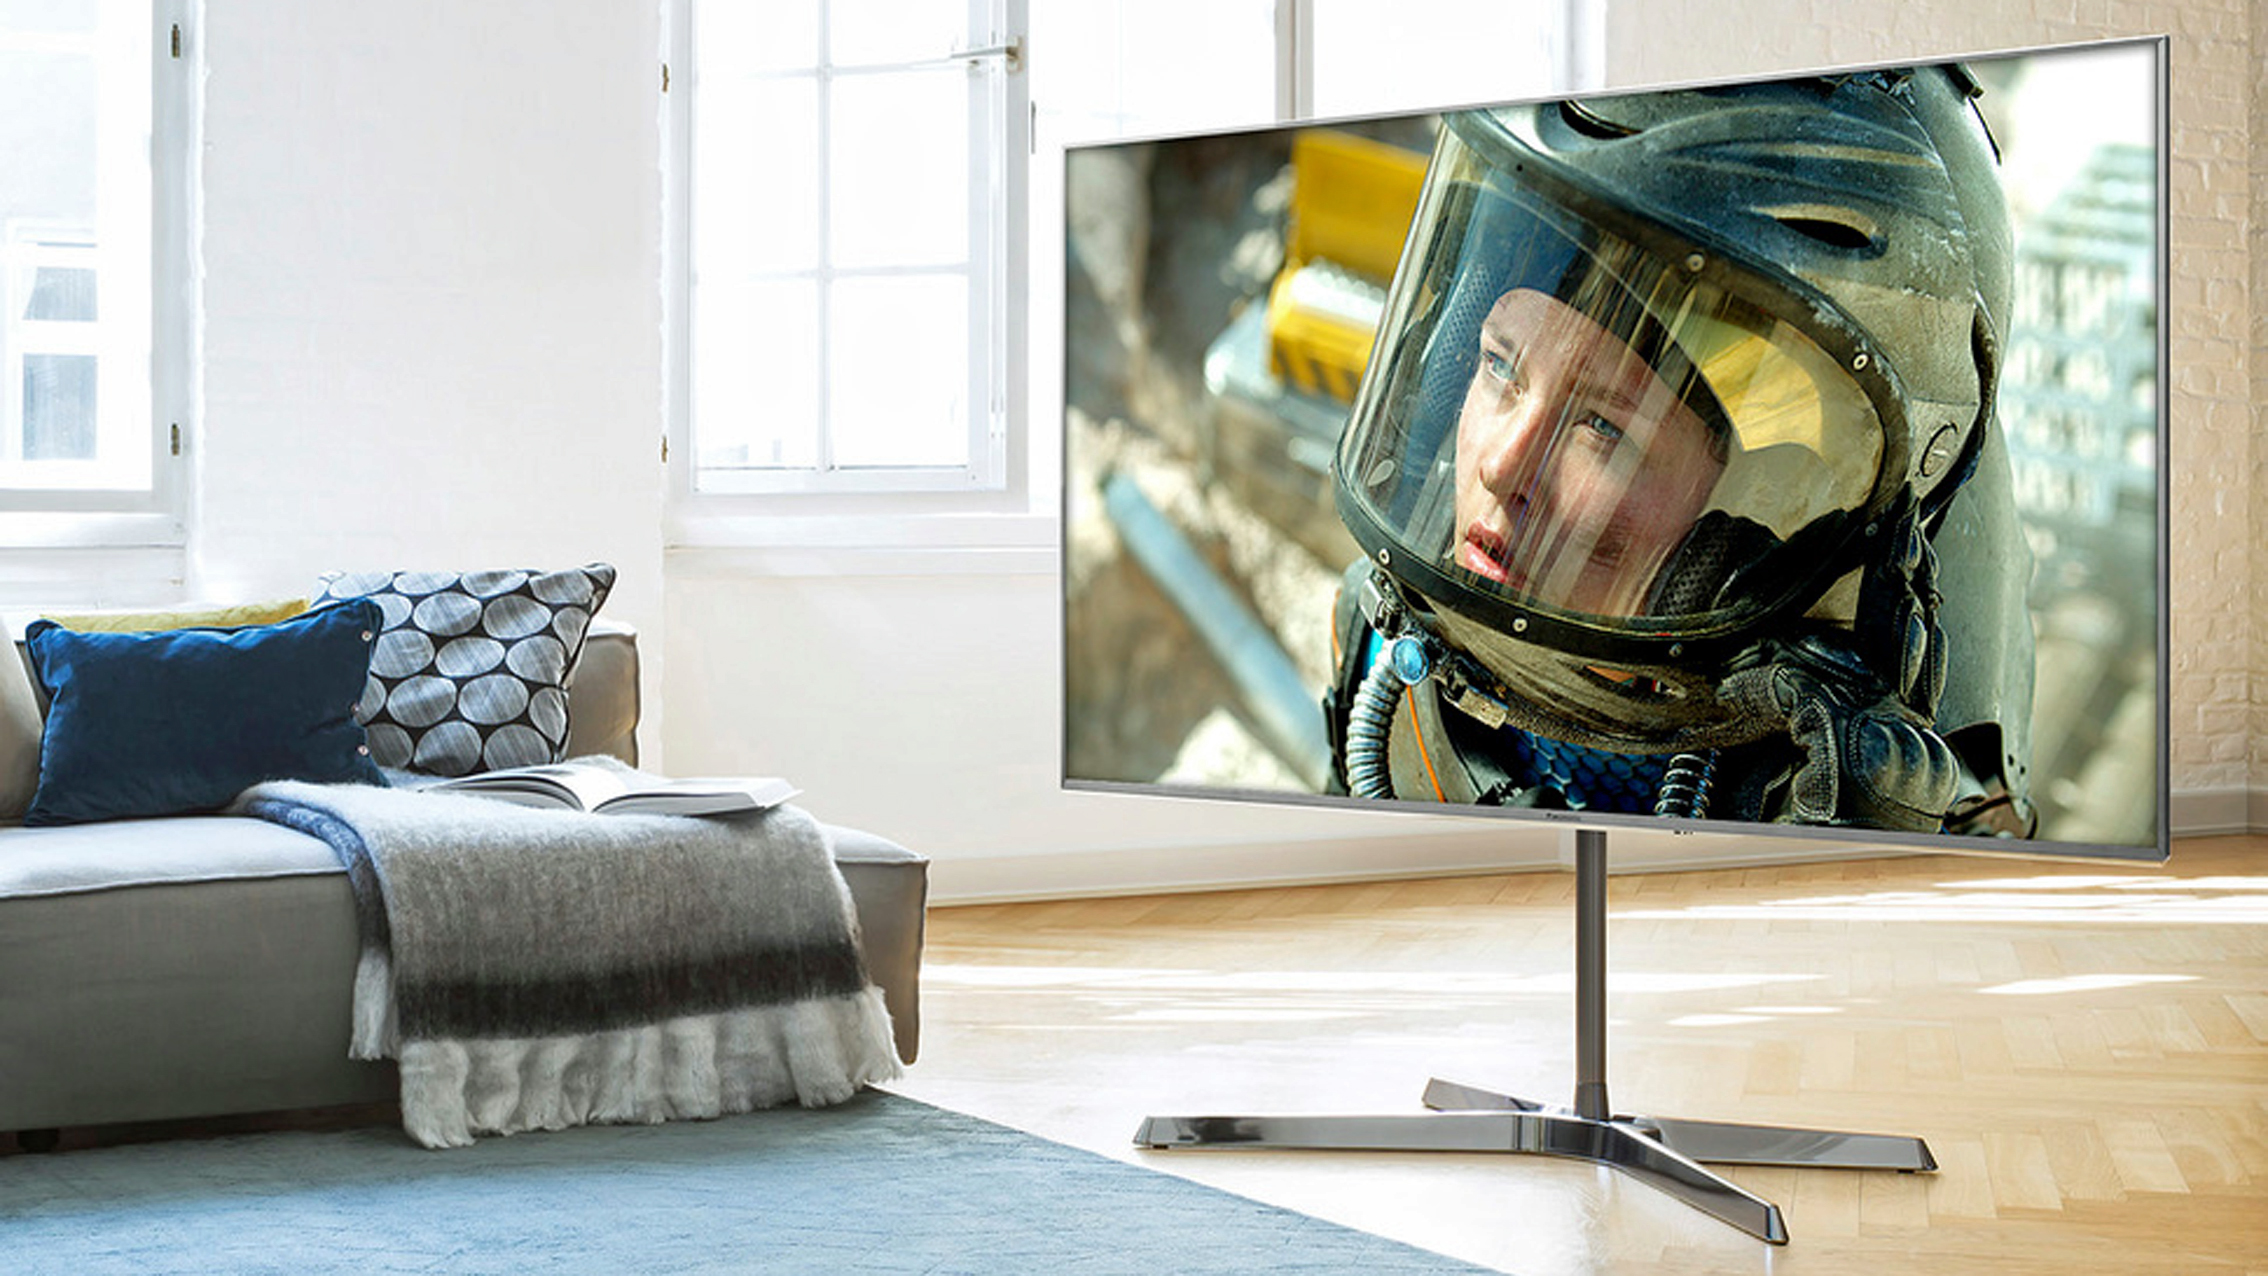 Panasonic EX750 review: the TX-58EX750B might be the best 4K